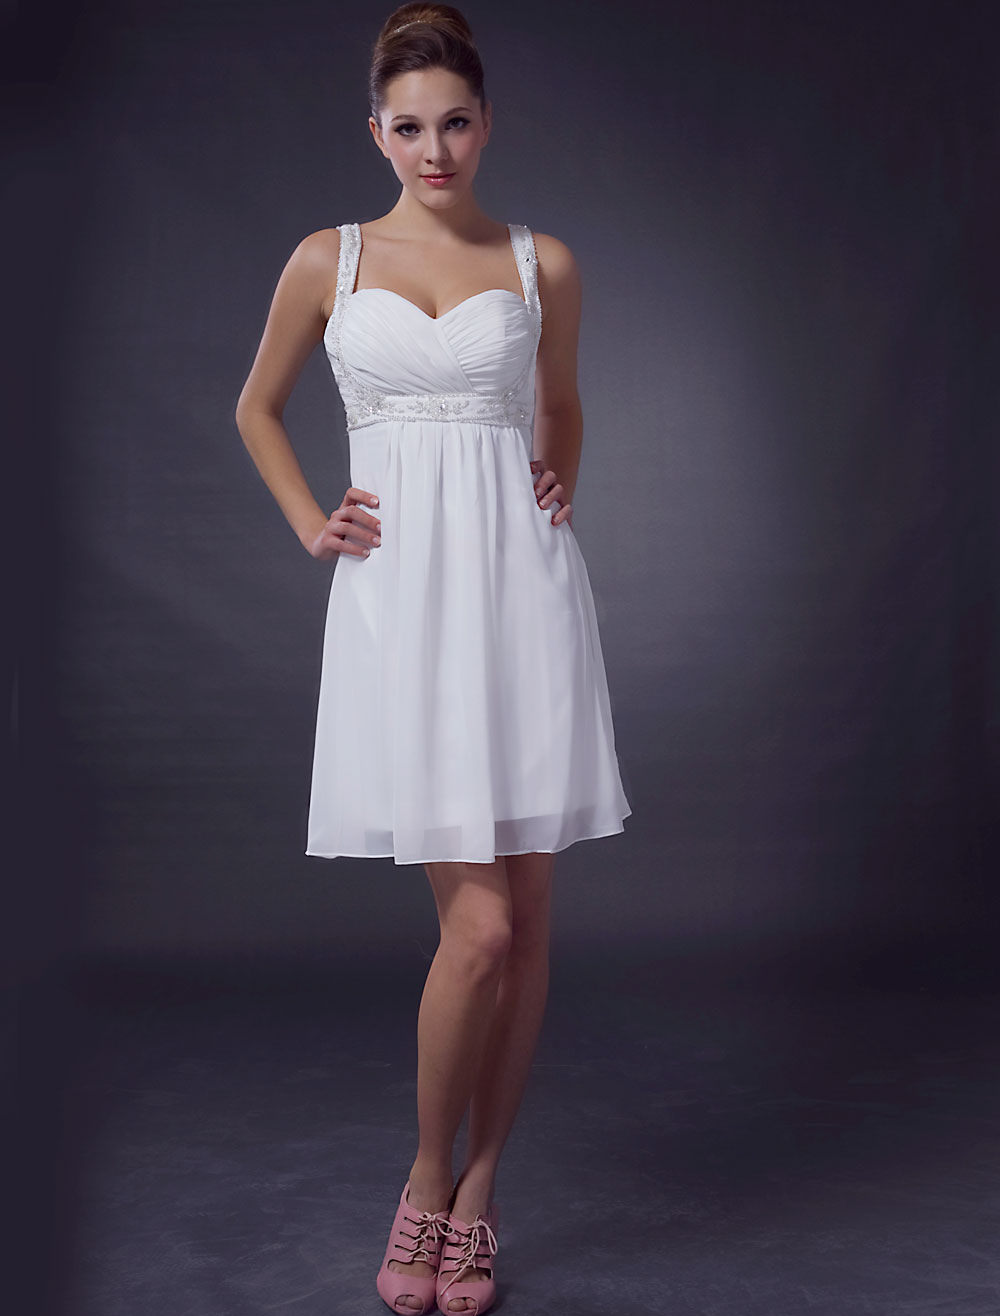 White Chiffon Short Cocktail Dress with Beaded